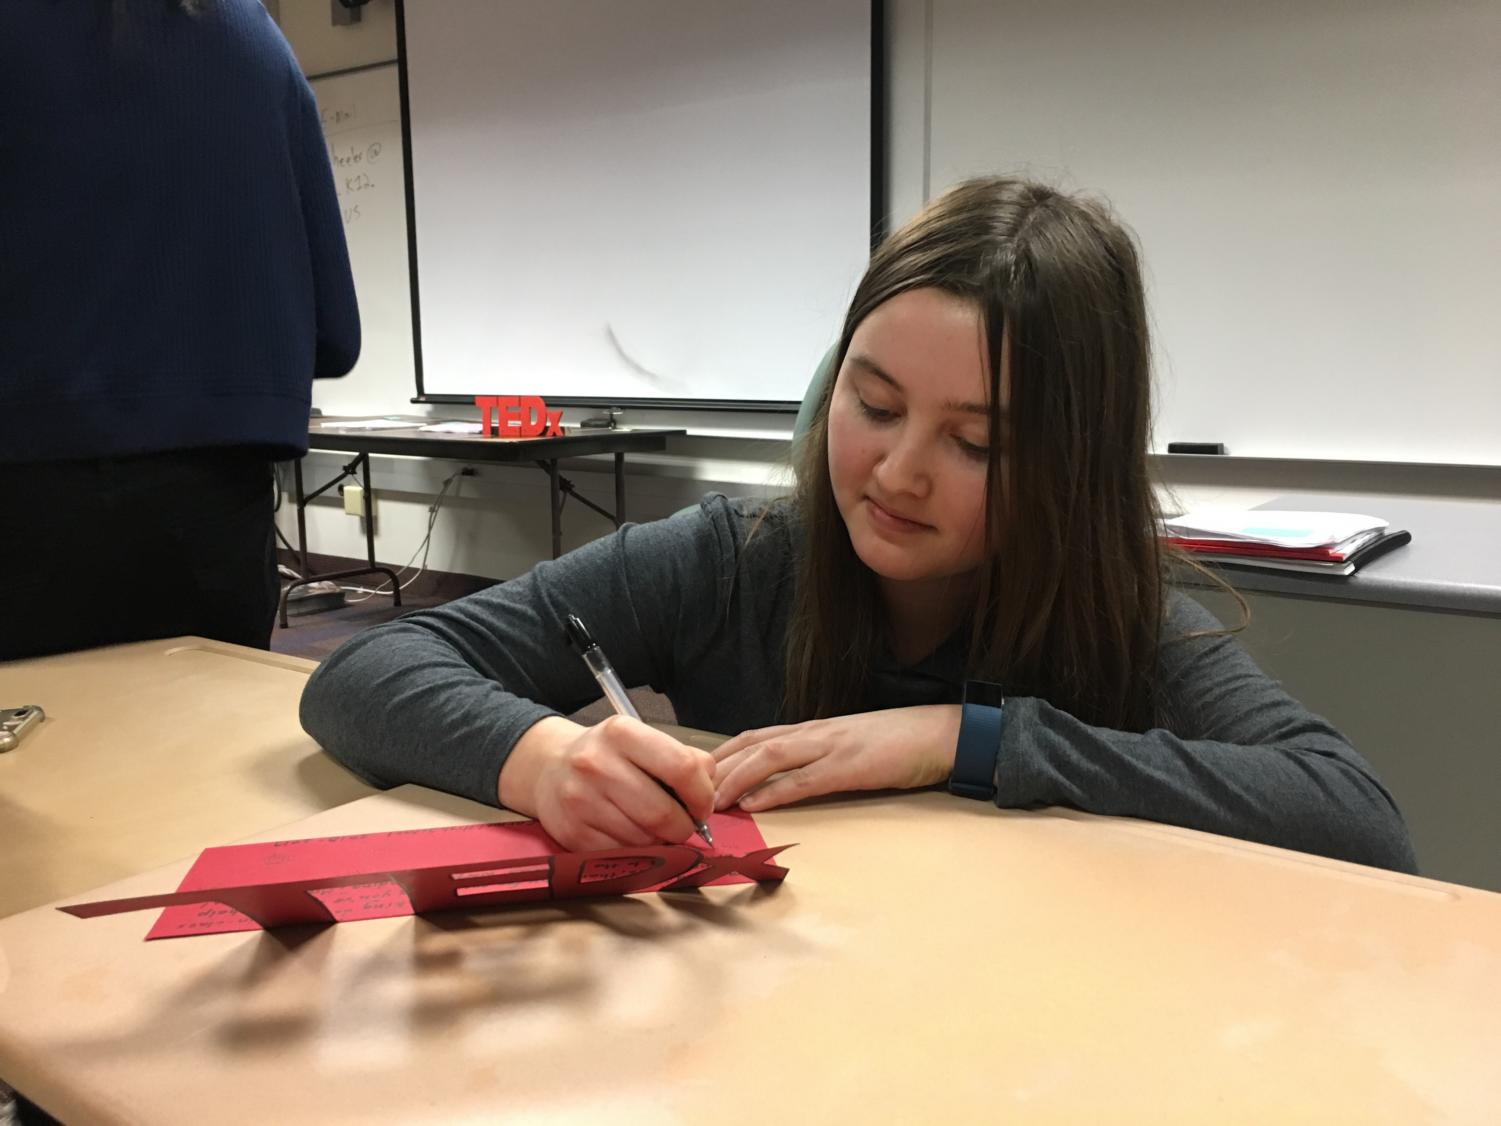 Ally Eaton, TEDx Event Planning committee head and senior, signs a thank you card for Allison Hargrove, former TEDx sponsor and social studies teacher. According to Selin Oh, TEDx president and senior, this card is a gesture to show Hargrove how great her impact on the club has been and how grateful the members have been for her support.